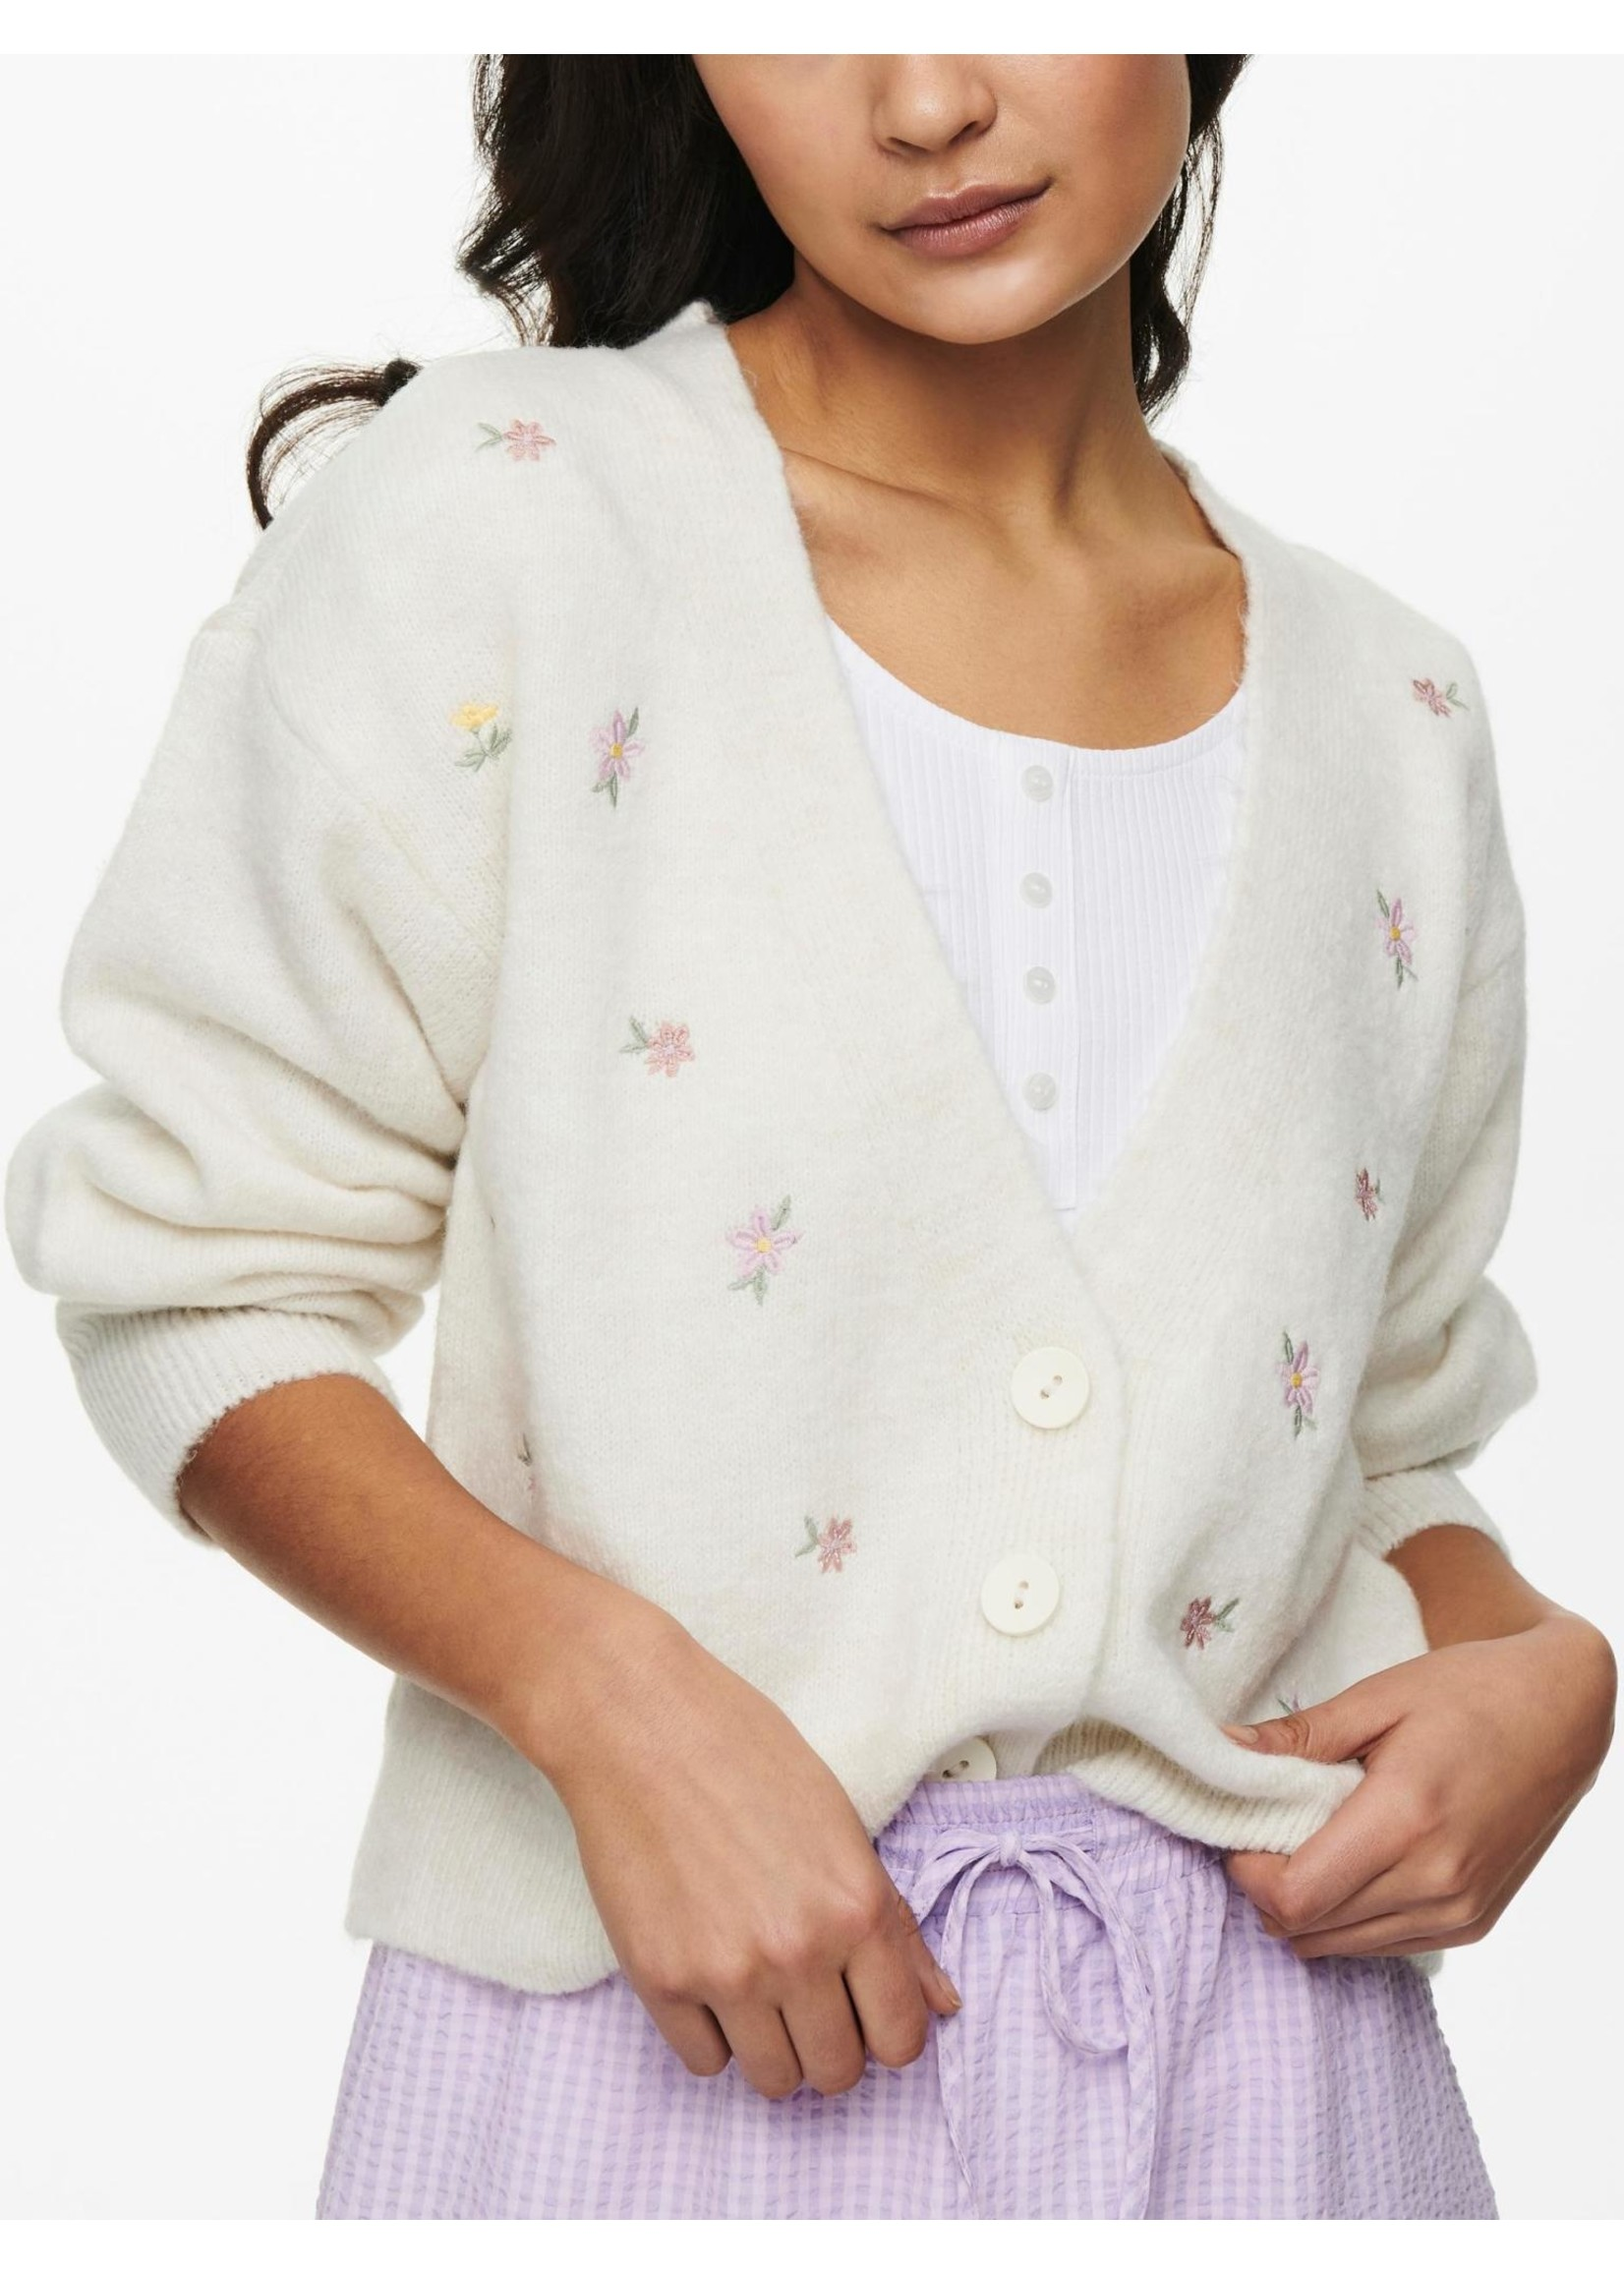 ONLY ANNIE L/S CARDIGAN KNT Desert Sage W. MELANGE AND EMBROIDERY ARTWORK